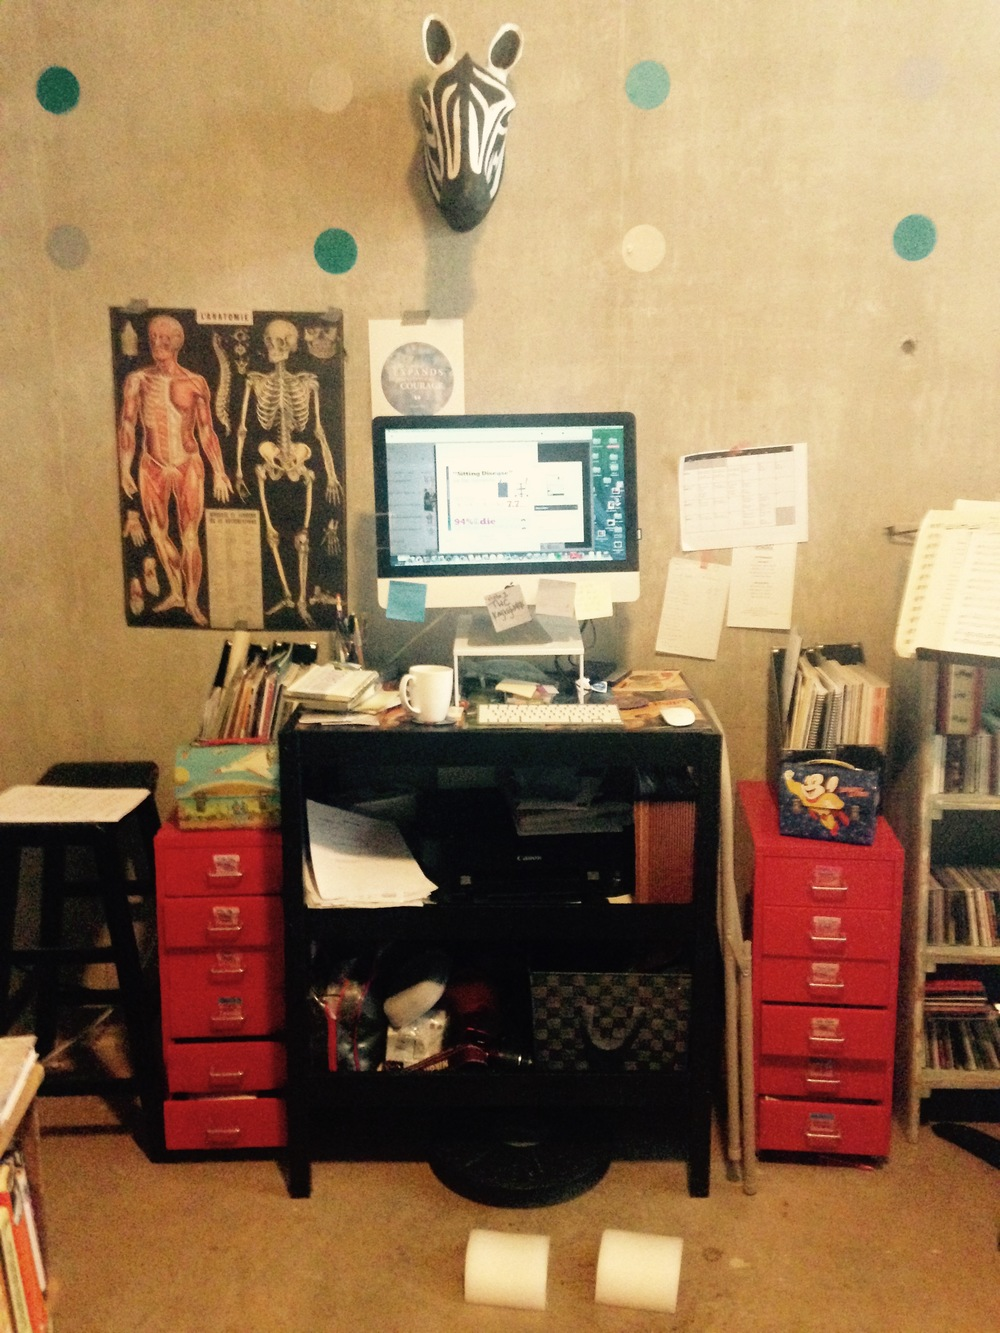 Complete with two half domes for stretching my calves, I love my standing desk.